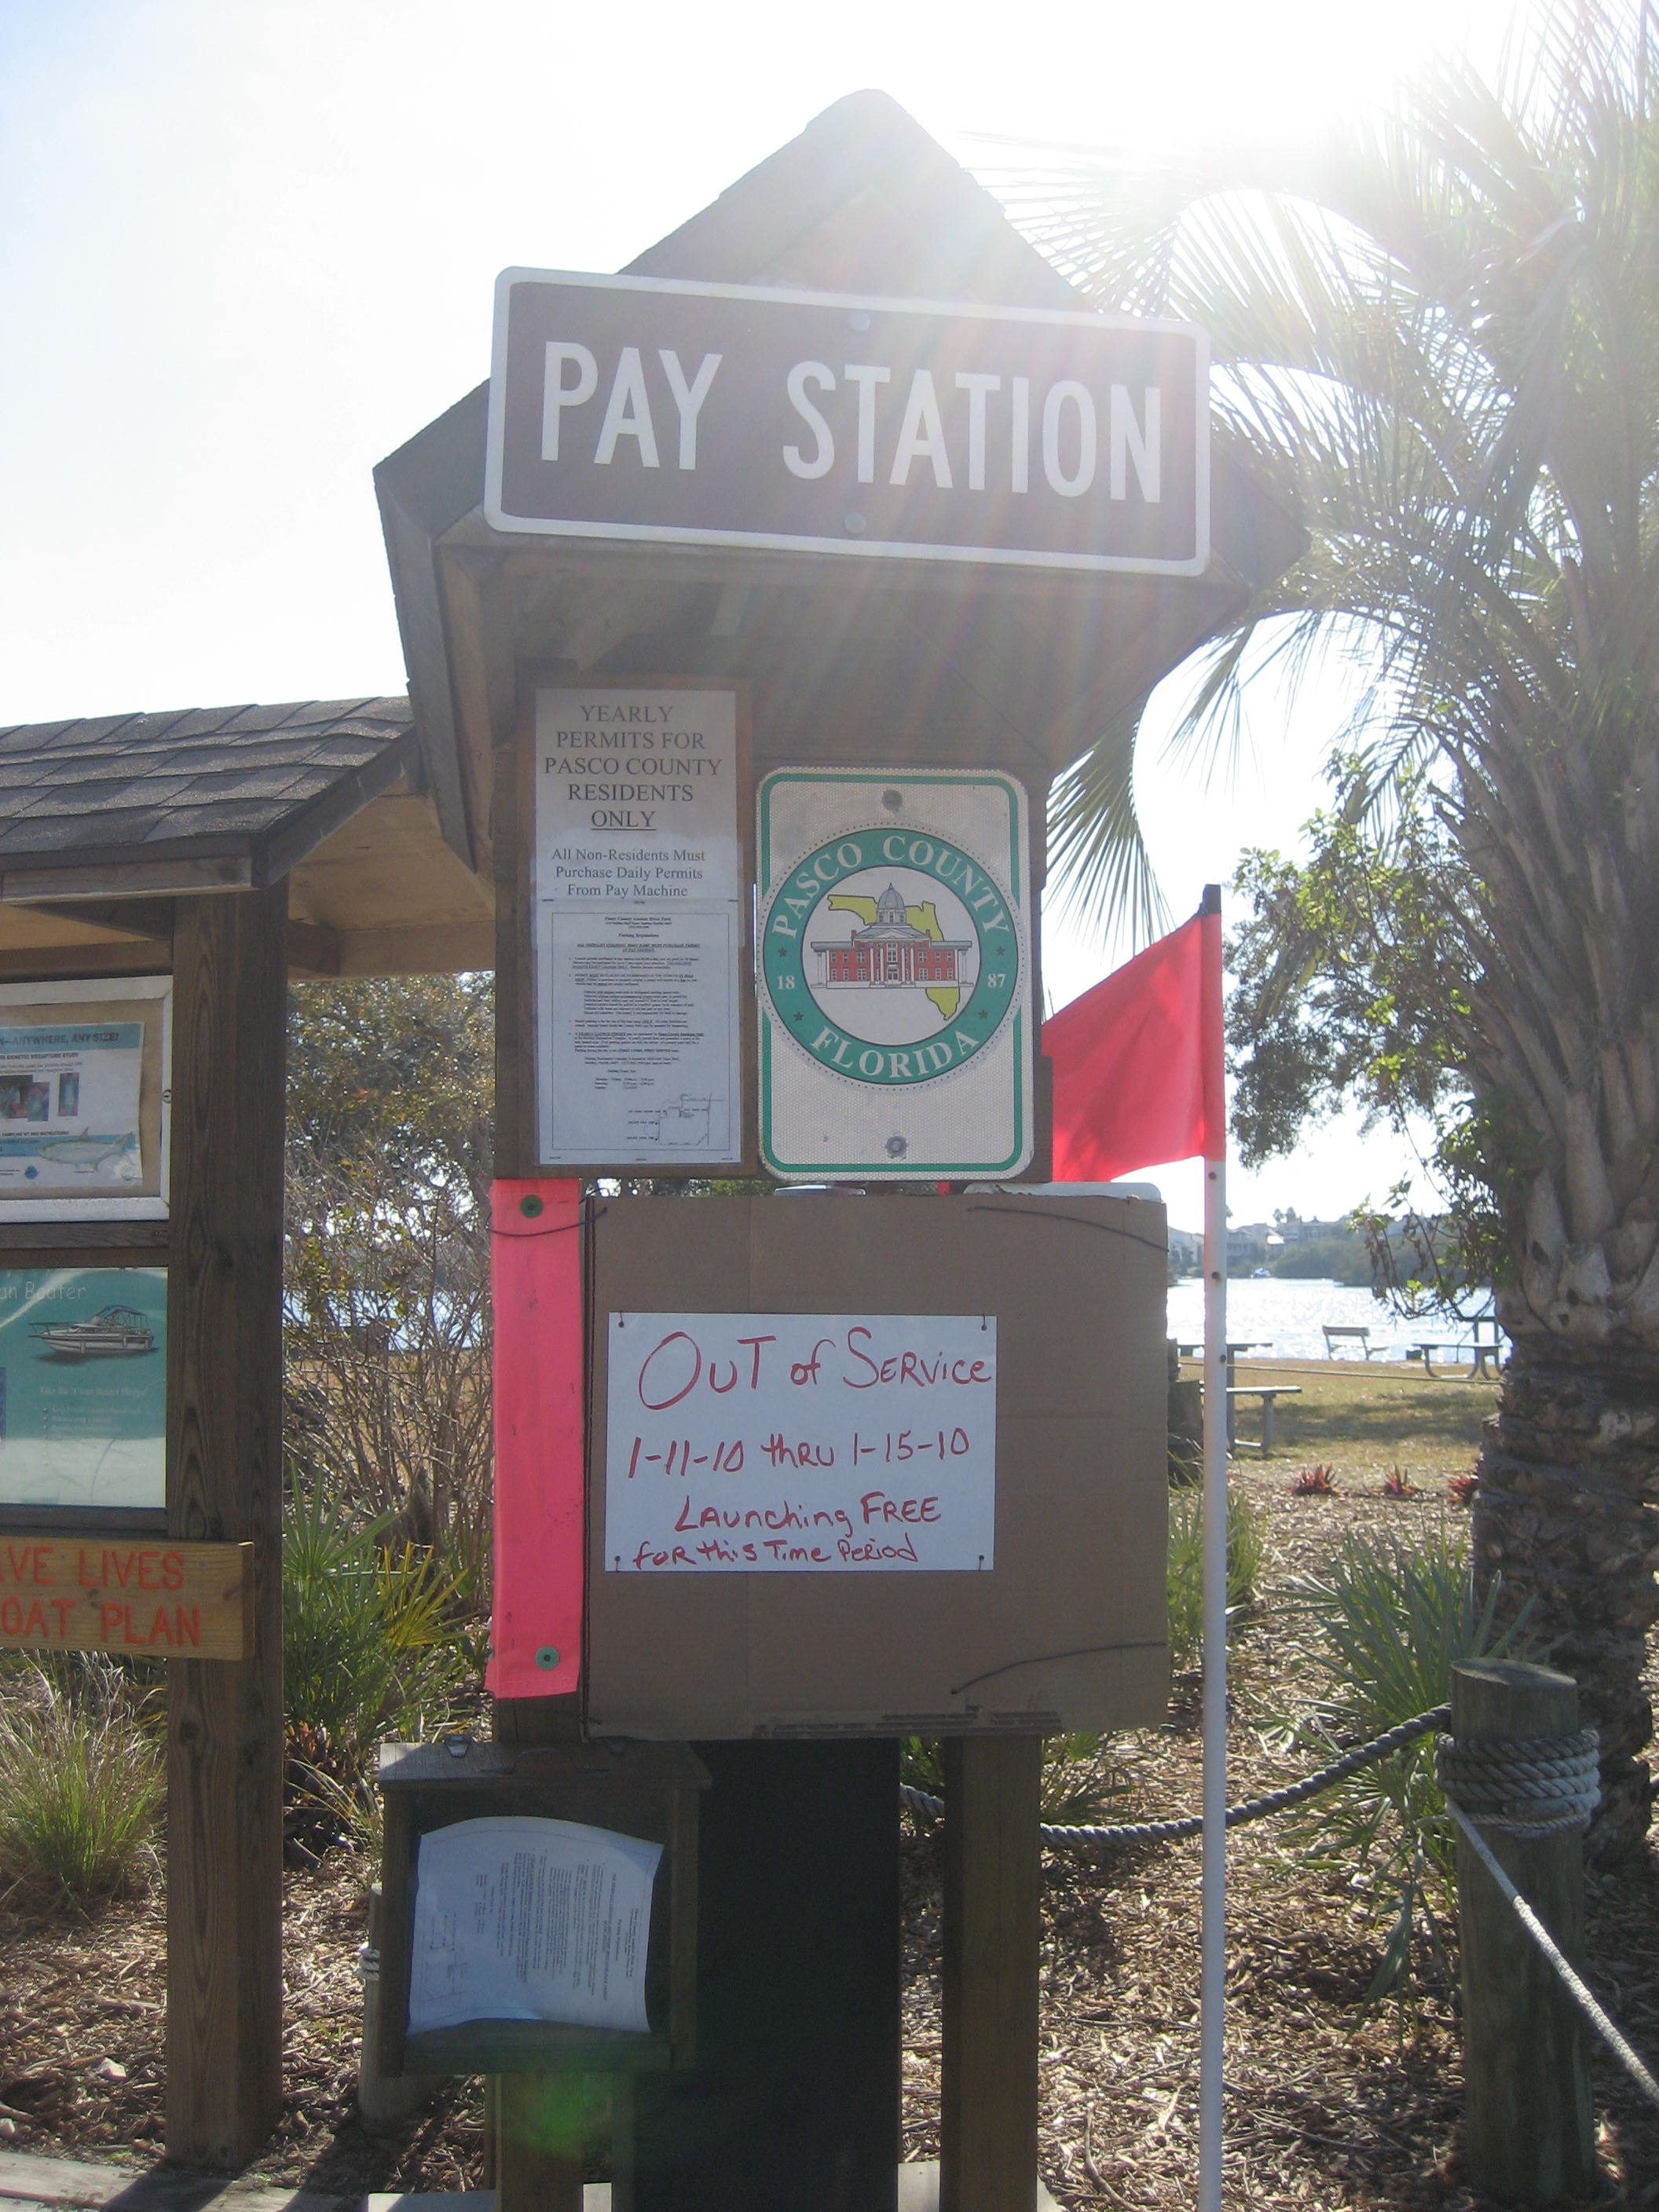 Pay Station for Boat Parking